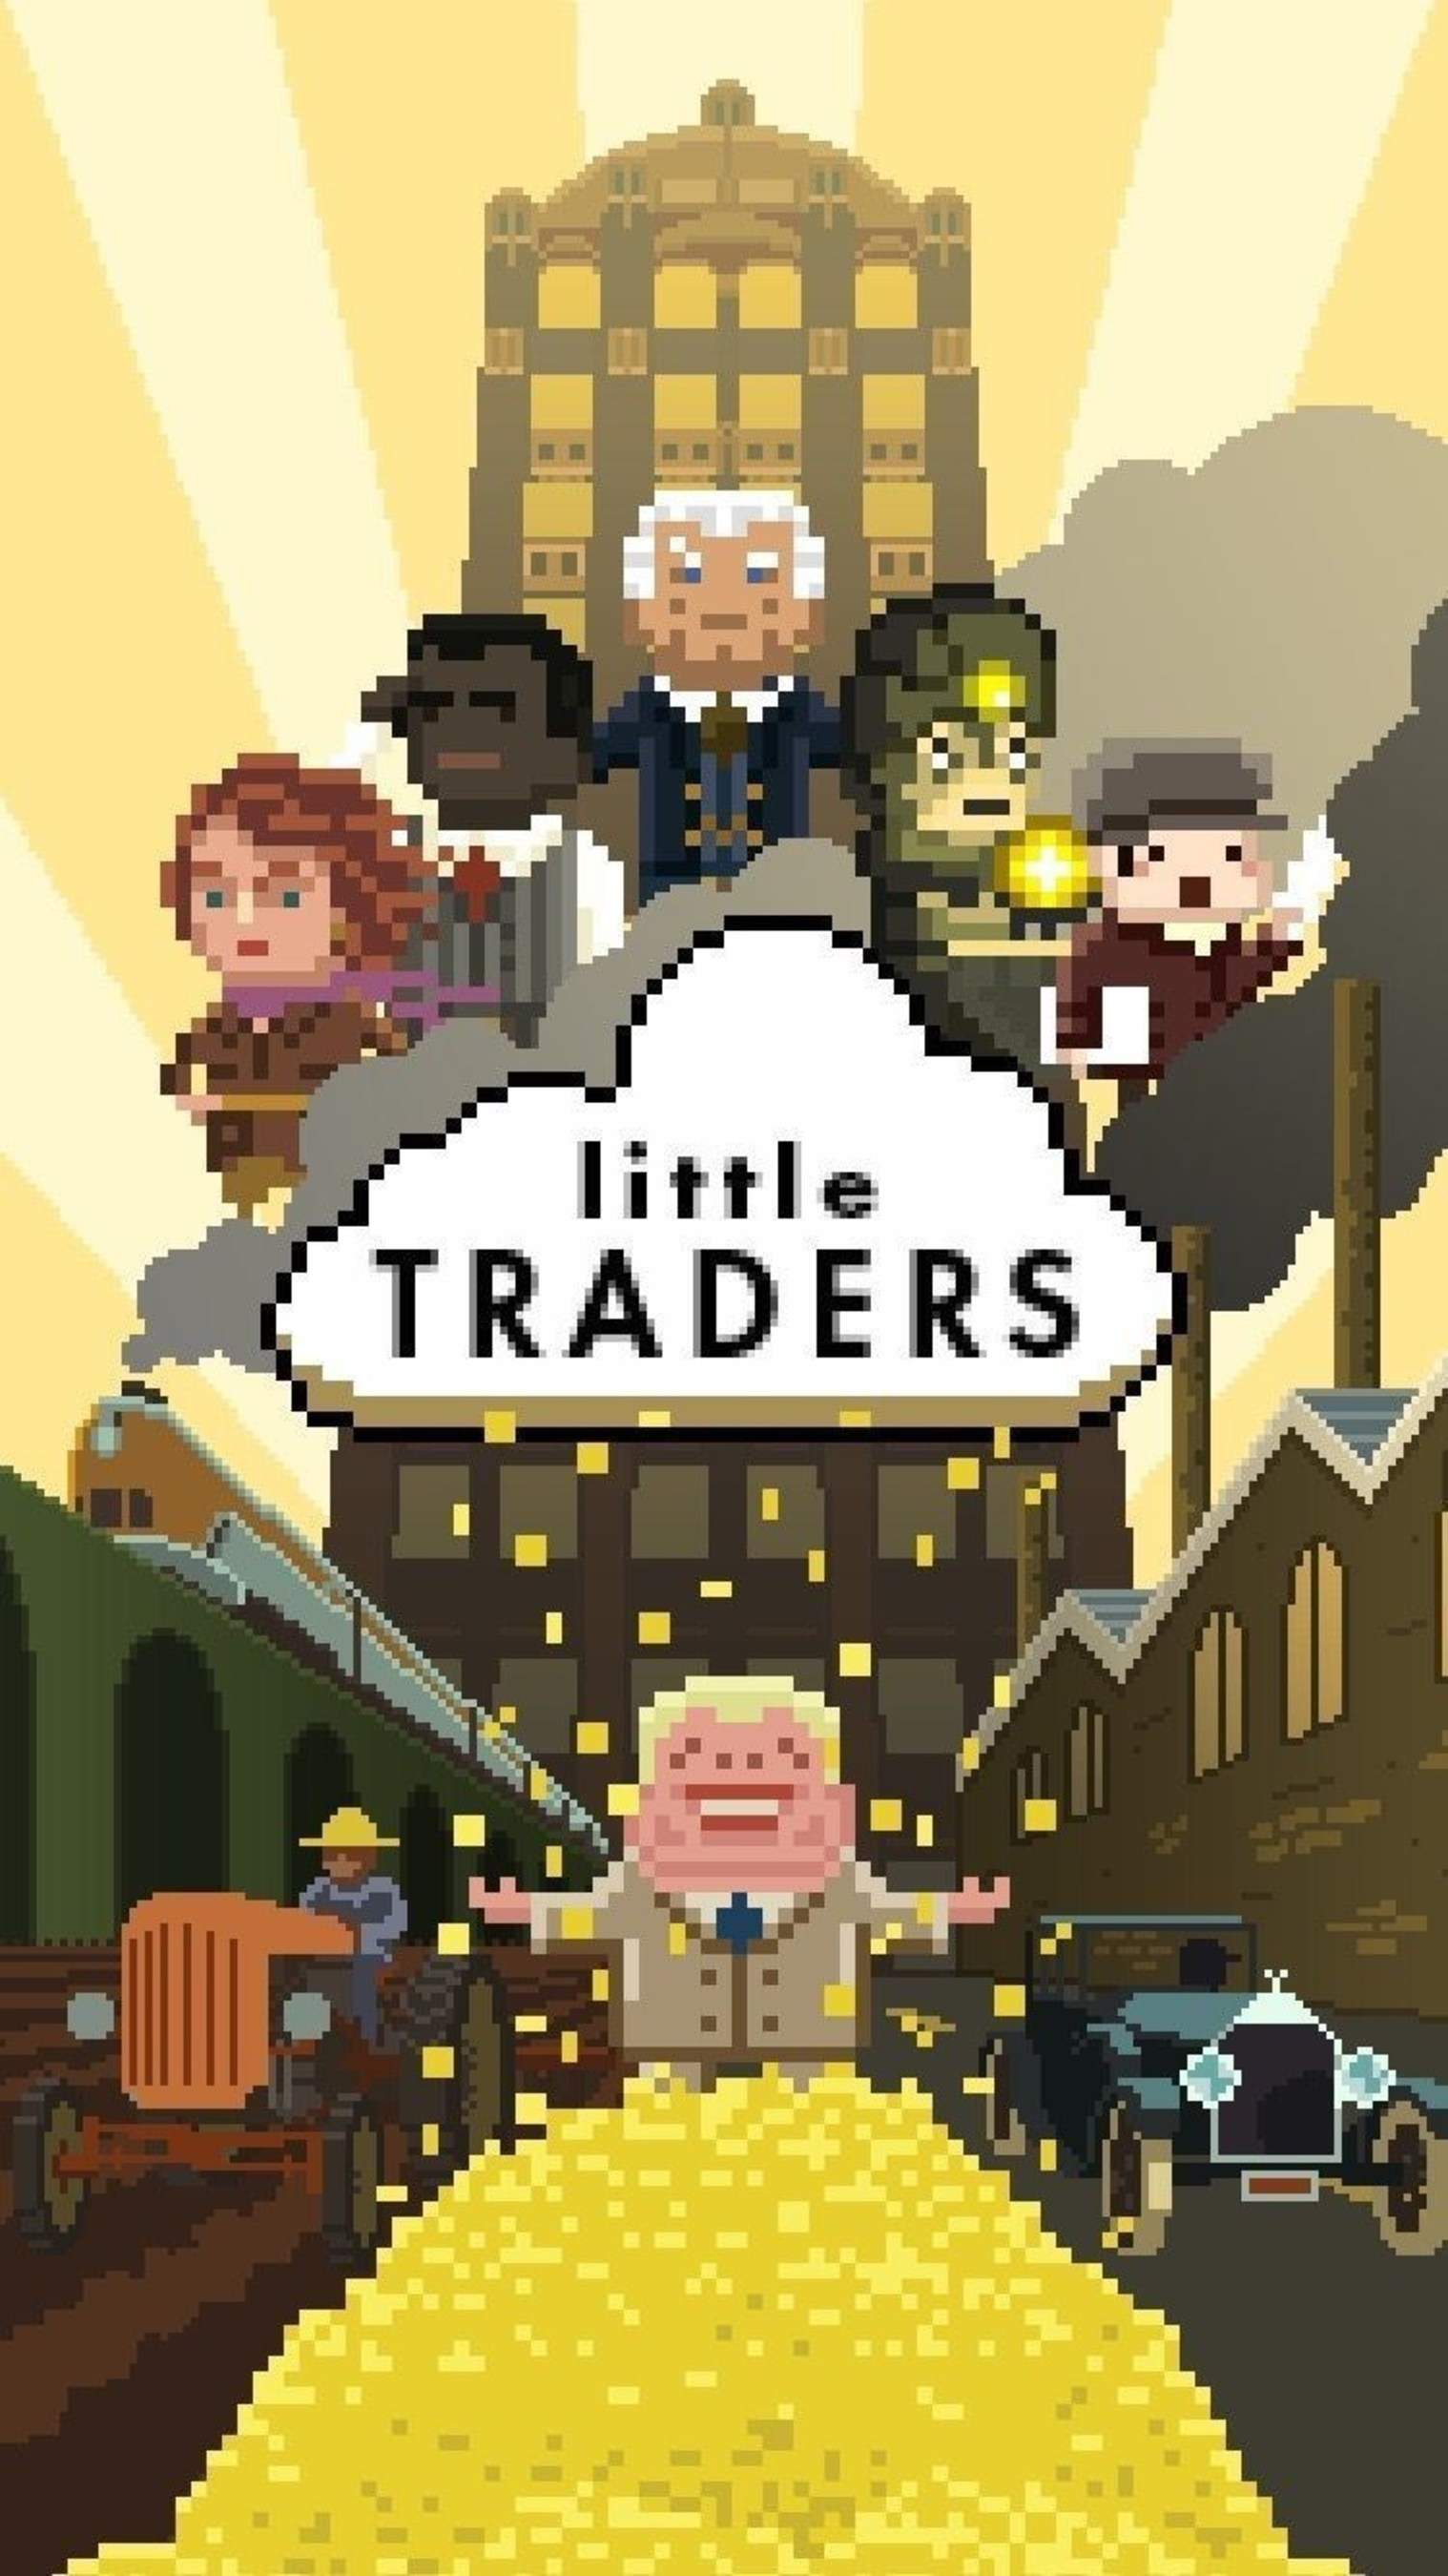 Master the Financial Markets with Award-Winning Little Traders iOS Game